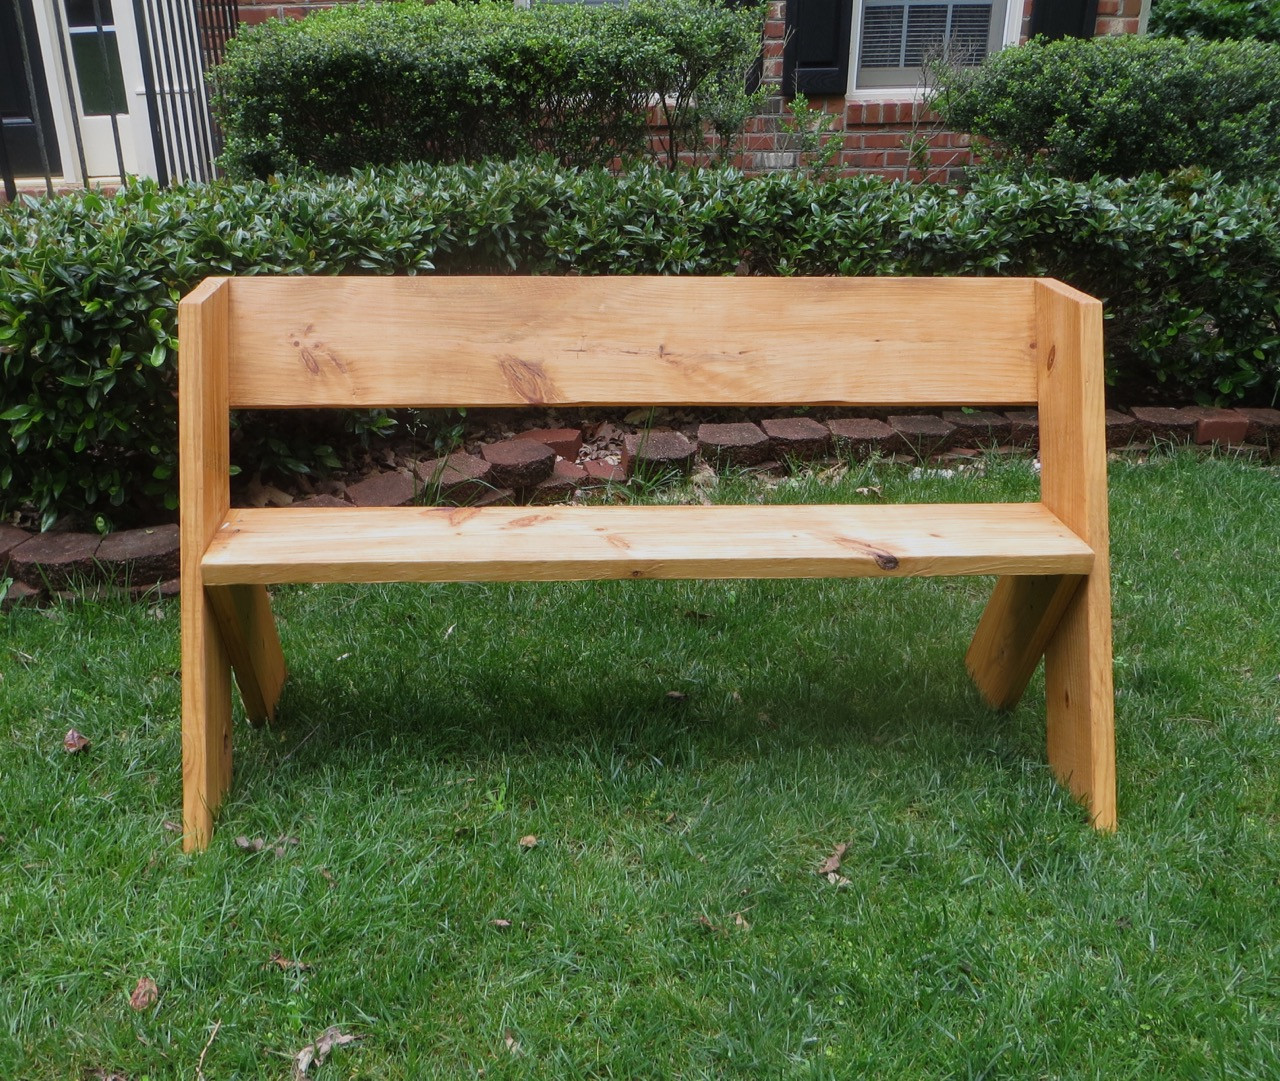 Best ideas about DIY Wooden Bench . Save or Pin DIY Tutorial $16 Simple Outdoor Wood Bench Now.